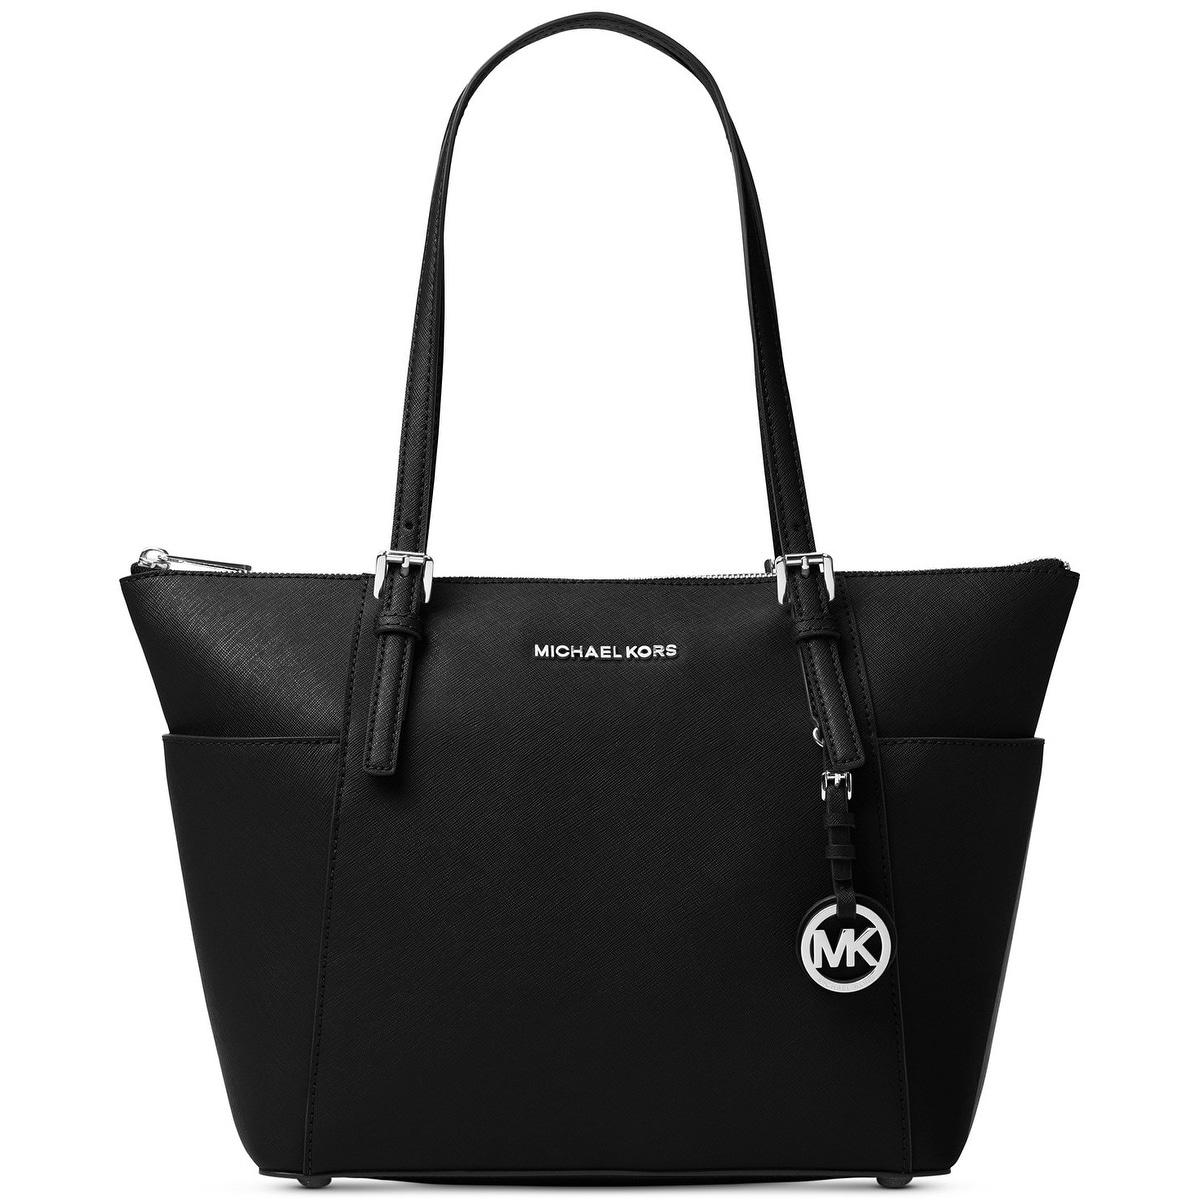 09992c17fead Buy Michael Kors Tote Bags Online at Overstock | Our Best Shop By Style  Deals